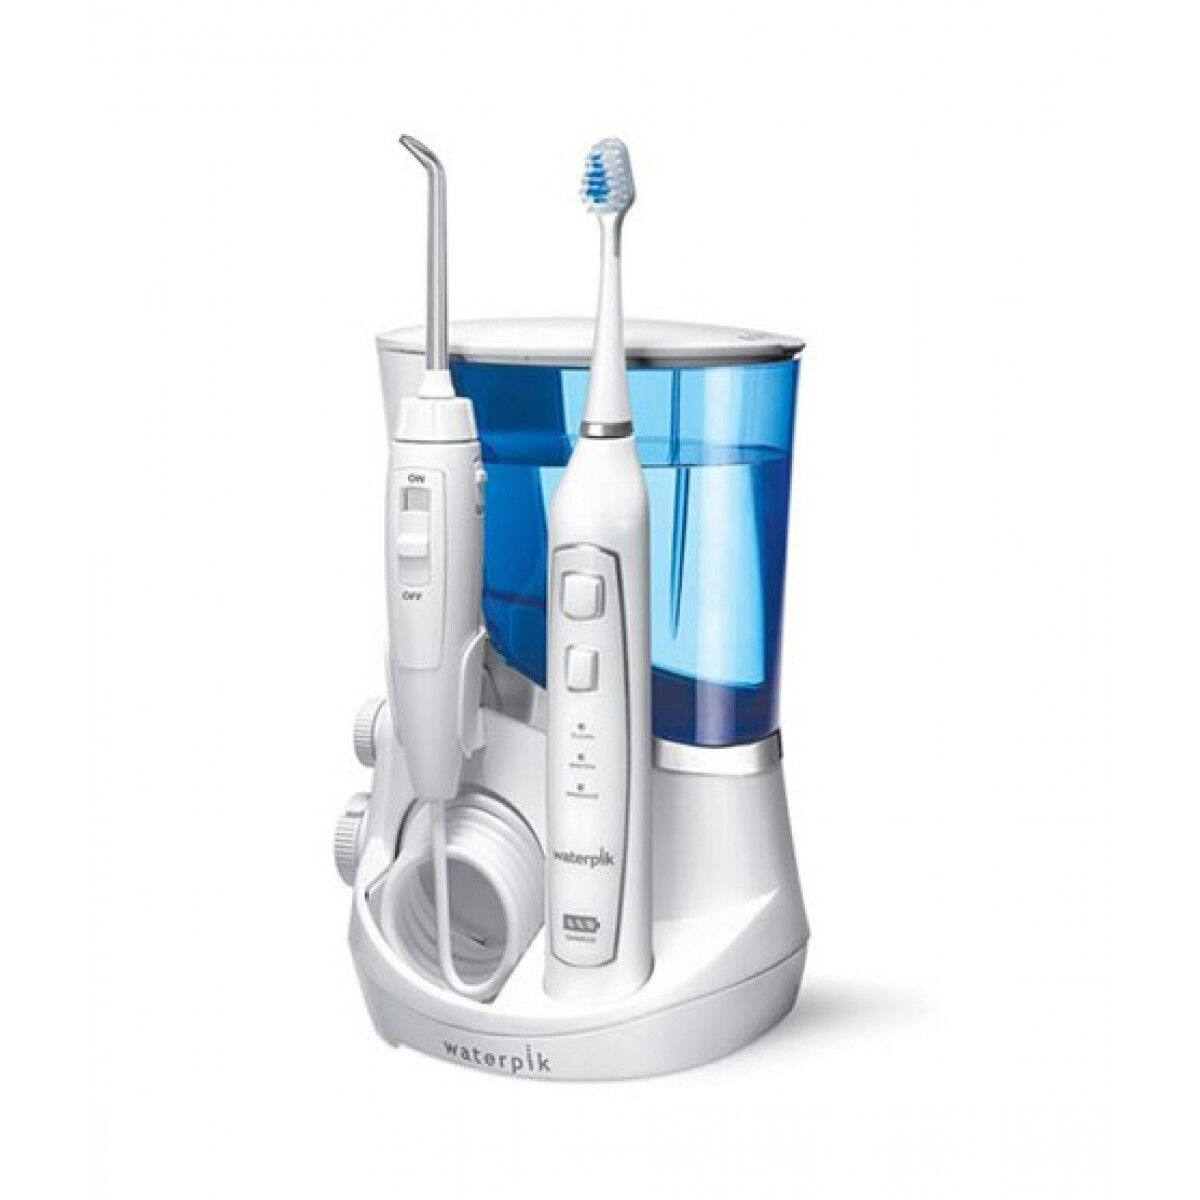 Waterpik Complete Care 5.0 Water Flosser and Sonic Tooth Brush (WP-861W)